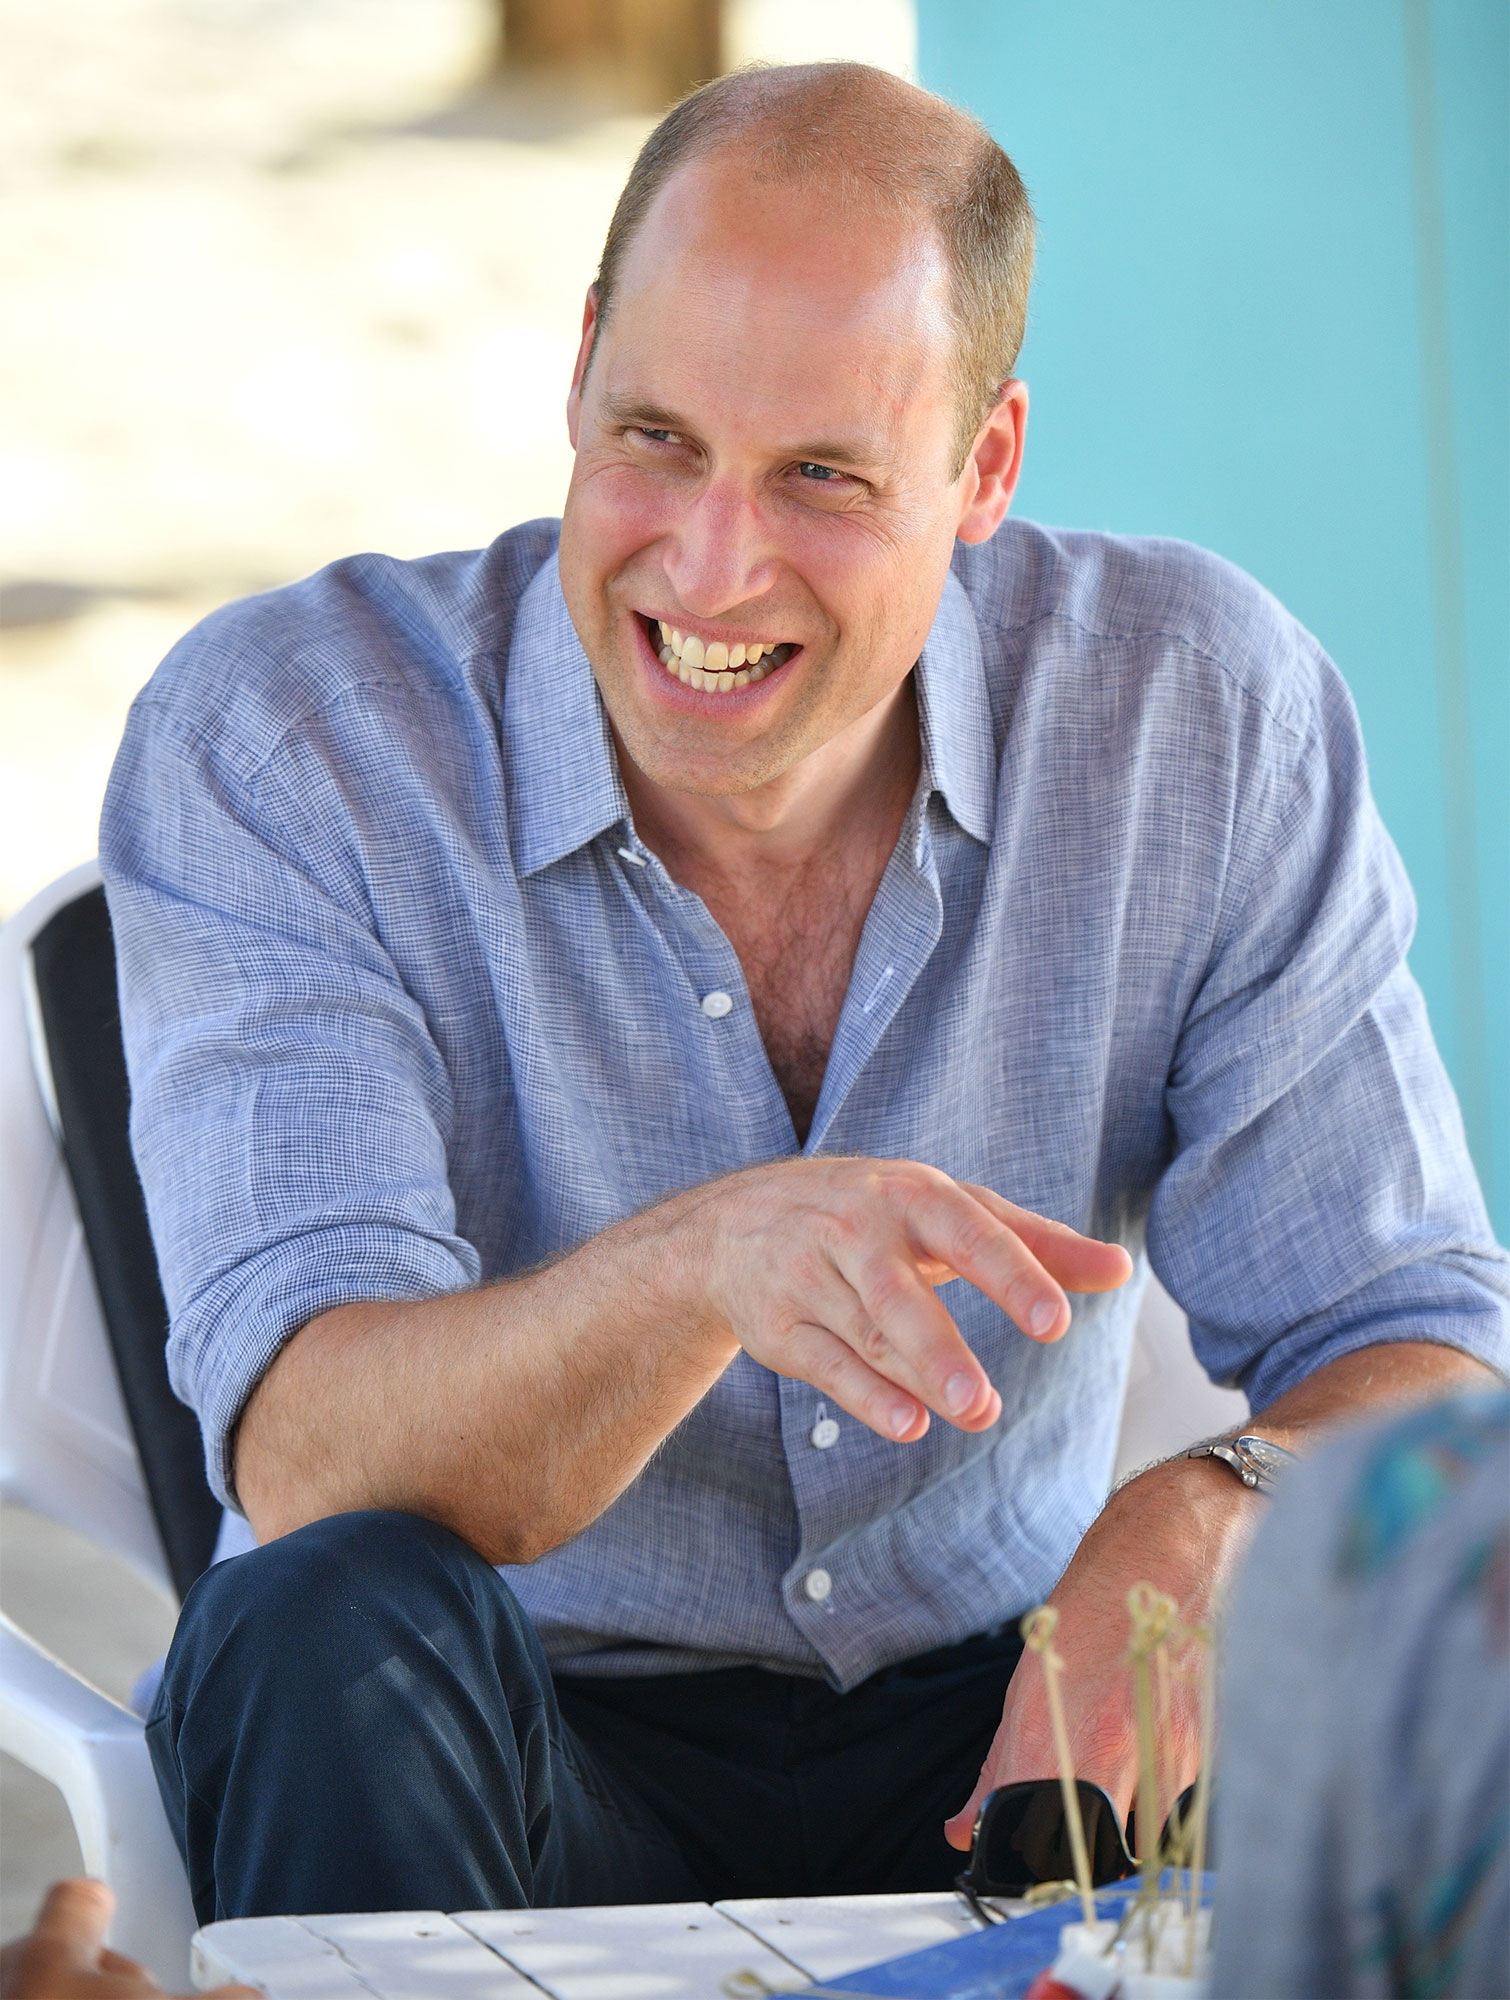 Prince William Middle East Tour, Israel - 26 Jun 2018